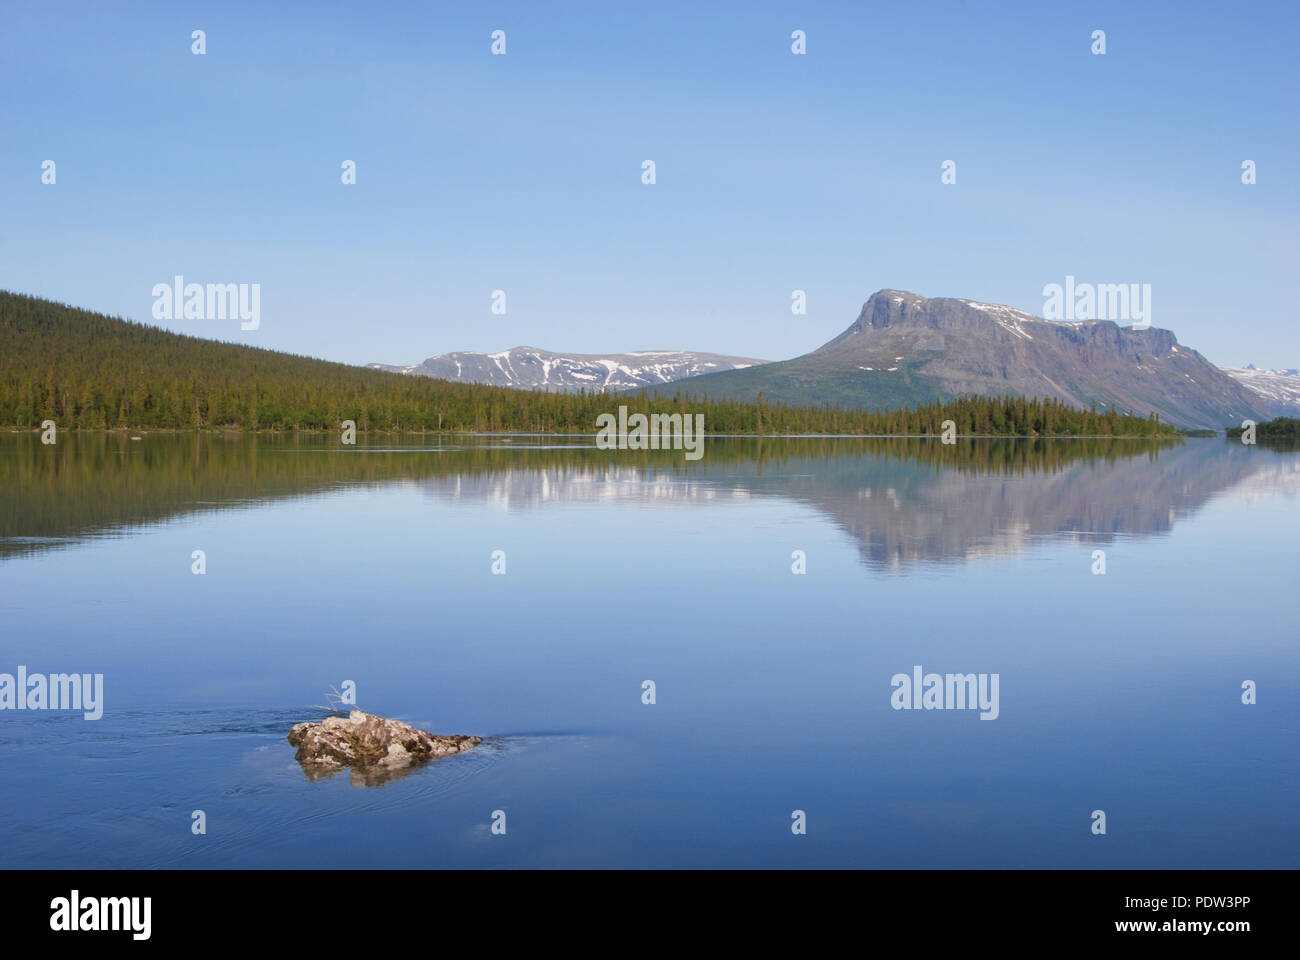 The beauty of Laponia Wilderness - Lake Laitaure Water Reflections - Stock Image